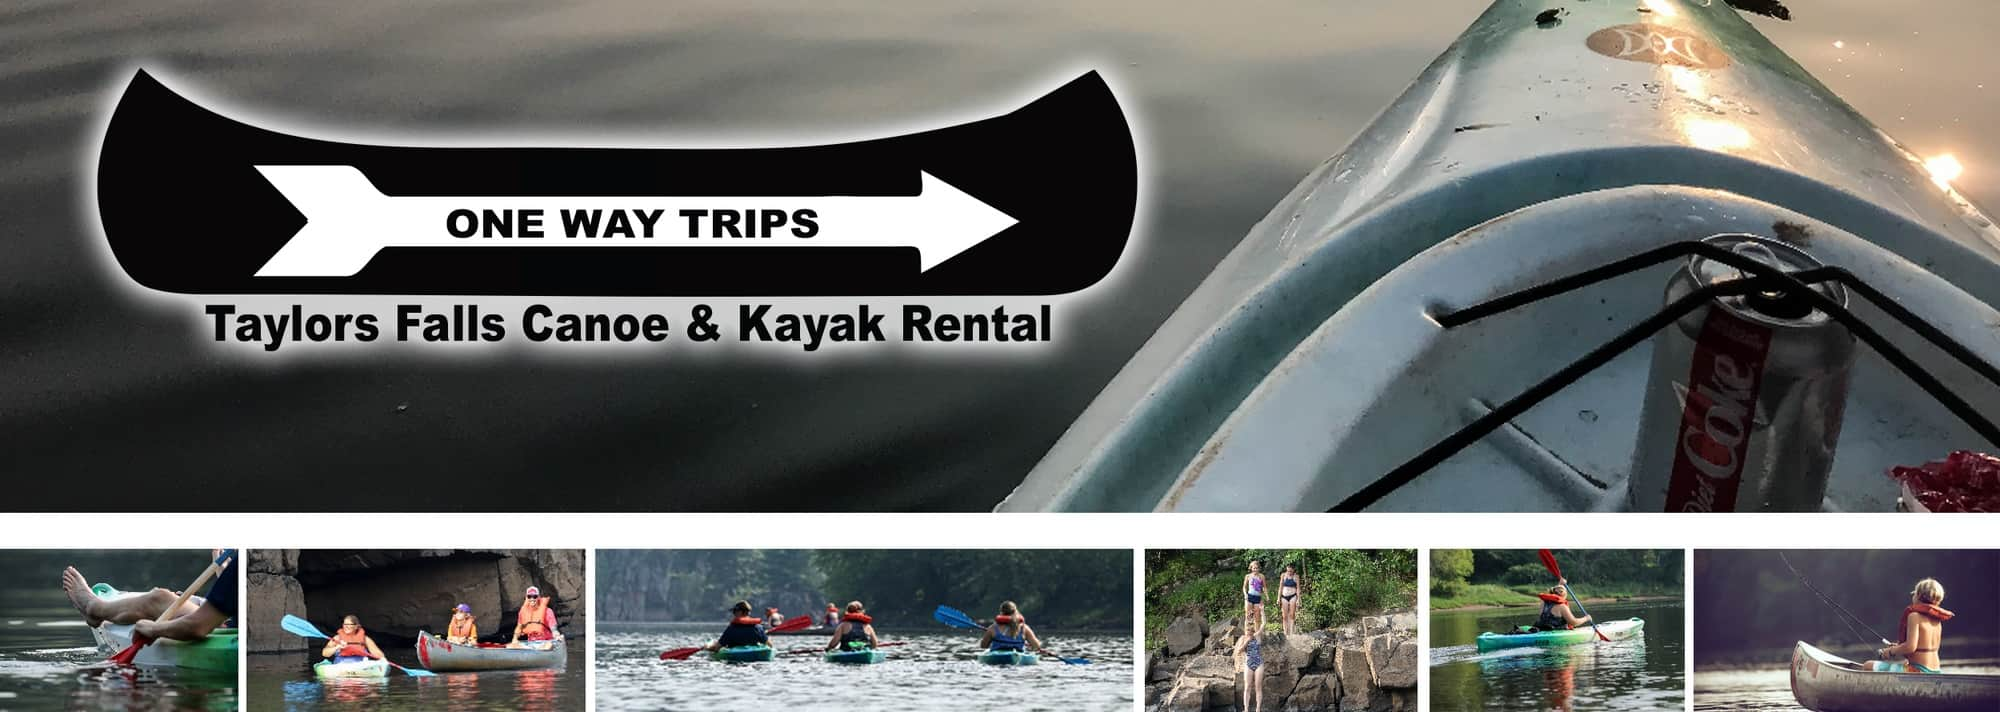 TAYLORS FALLS RECREATION Canoe & Kayak Rental